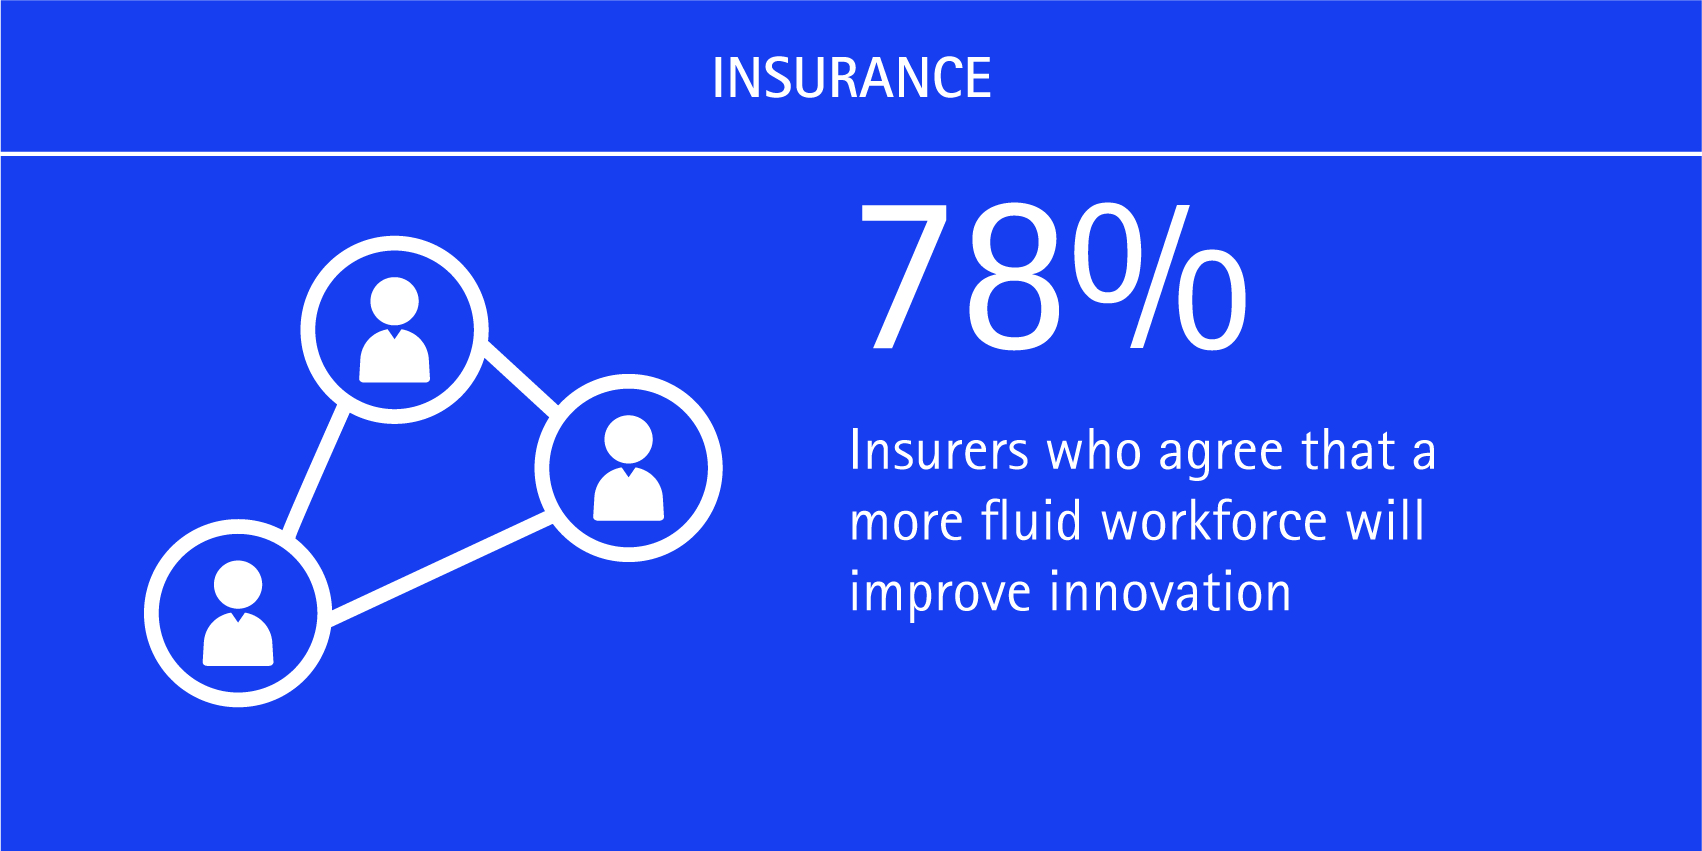 78% of insurers agree that a more fluid workforce will improve innovation